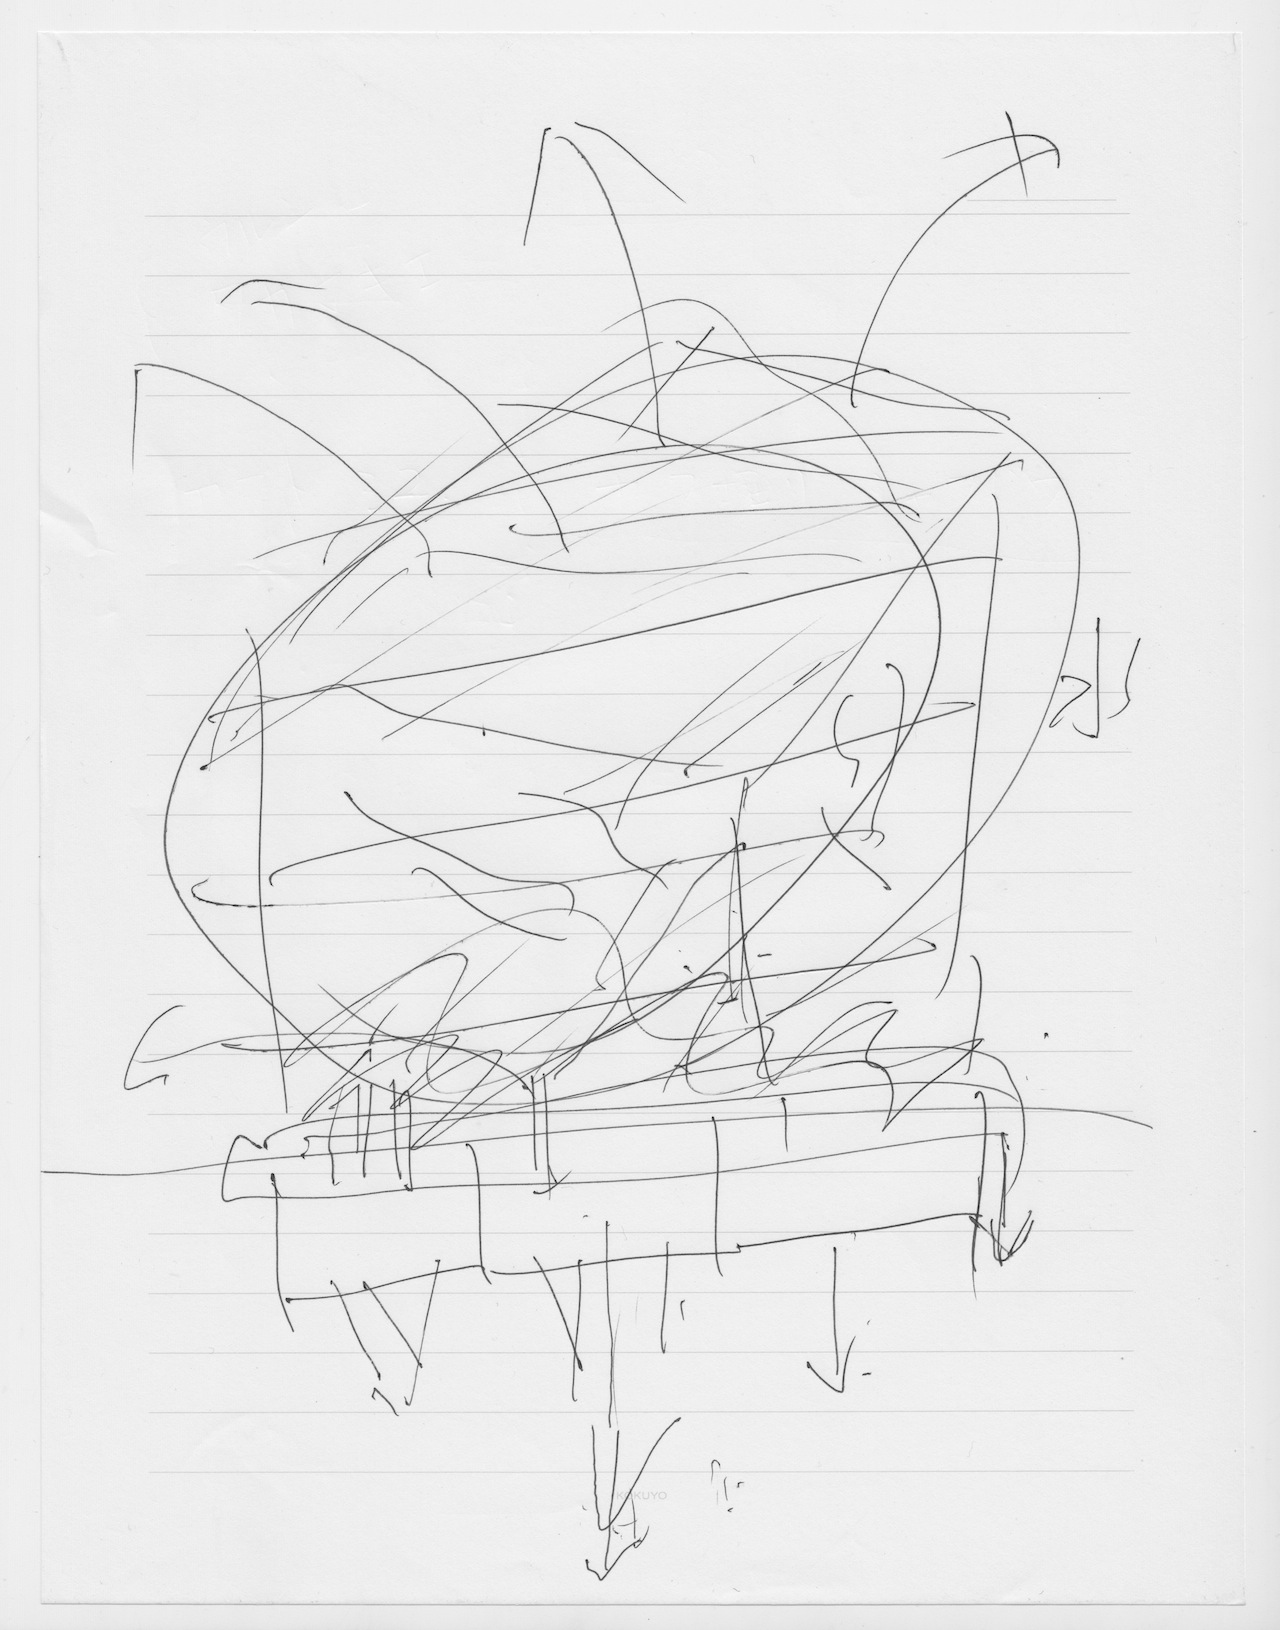 On The Fourth Anniversary Of Fukushima Artists Install An Nuclear Power Plant Diagram And Explanation Drawing By A Former Resident Affected Disaster Click To Enlarge